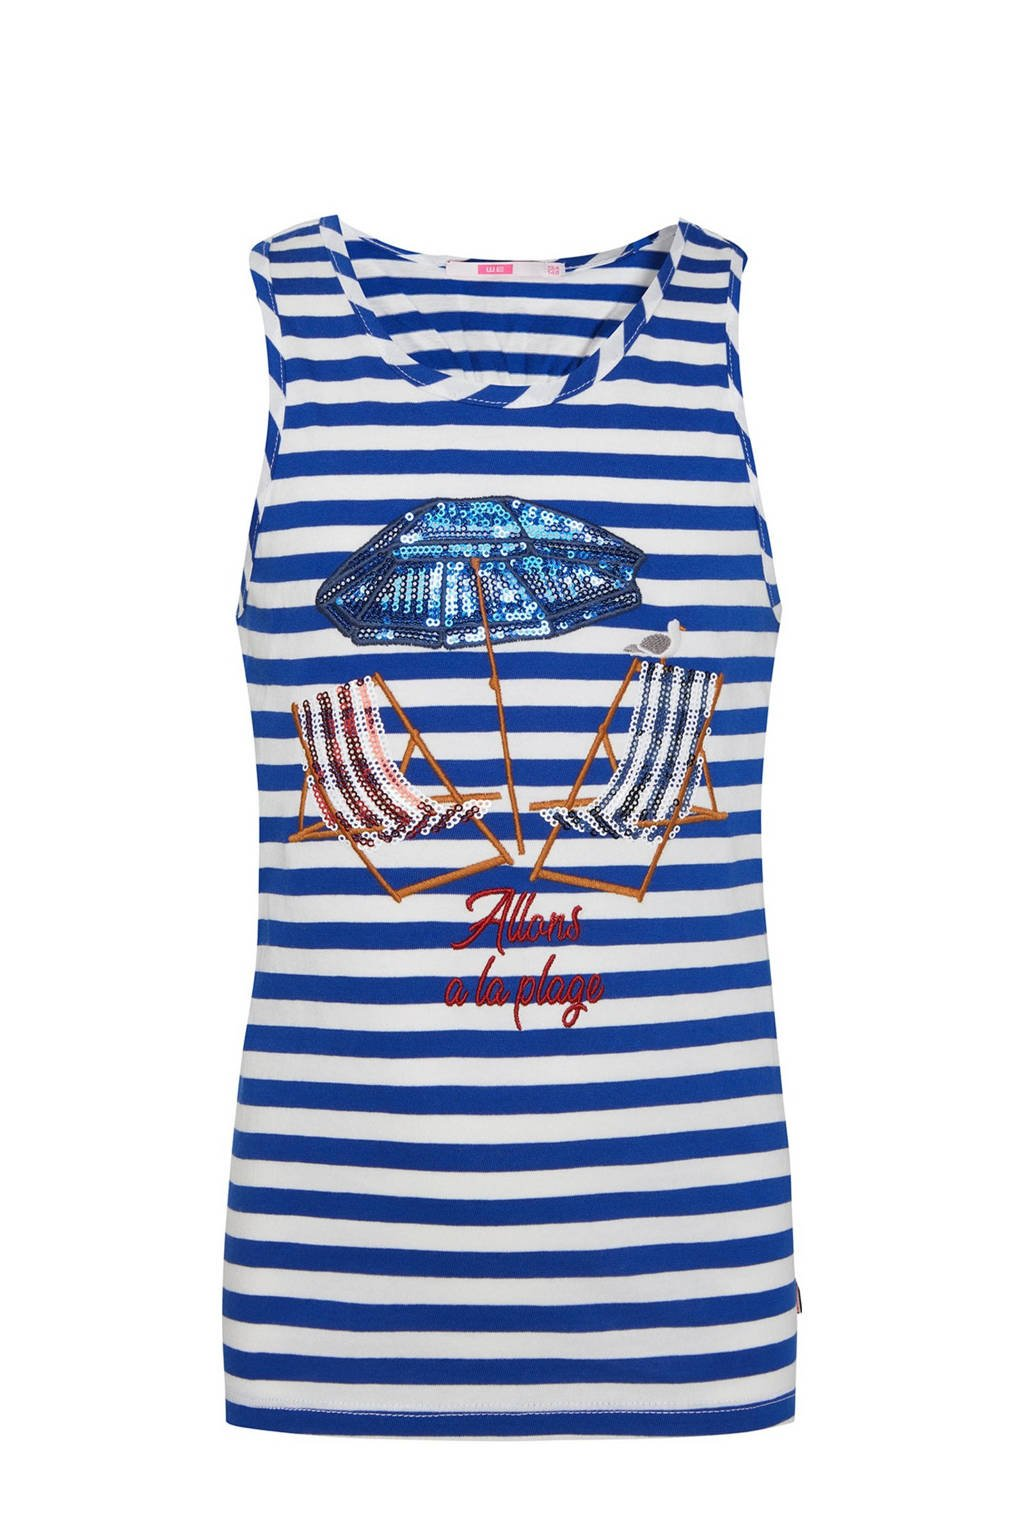 WE Fashion gestreepte singlet blauw/wit/rood, Blauw/wit/rood